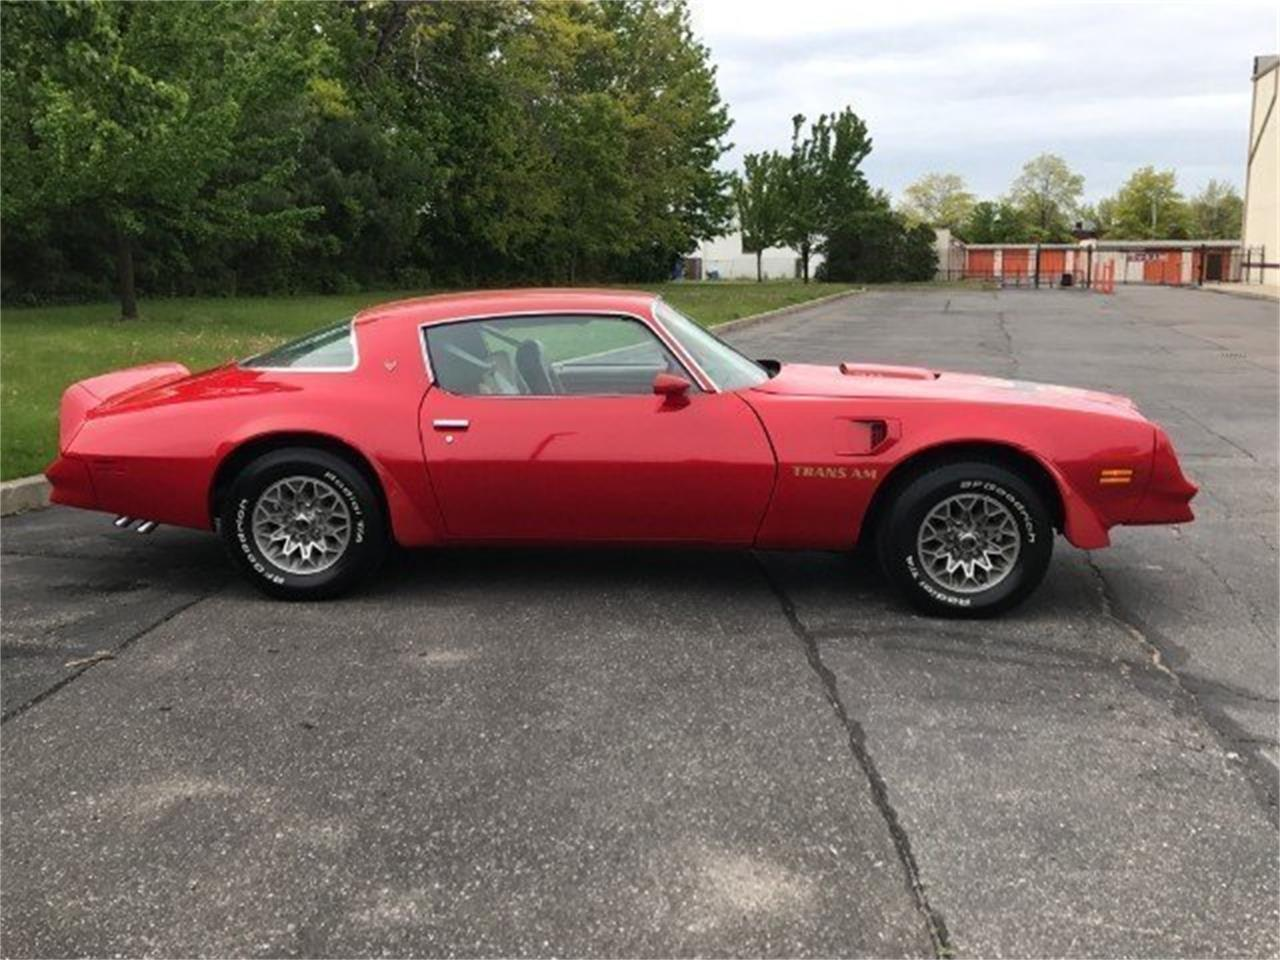 Large Picture of '77 Firebird Trans Am located in North Carolina Auction Vehicle Offered by GAA Classic Cars Auctions - MKVE